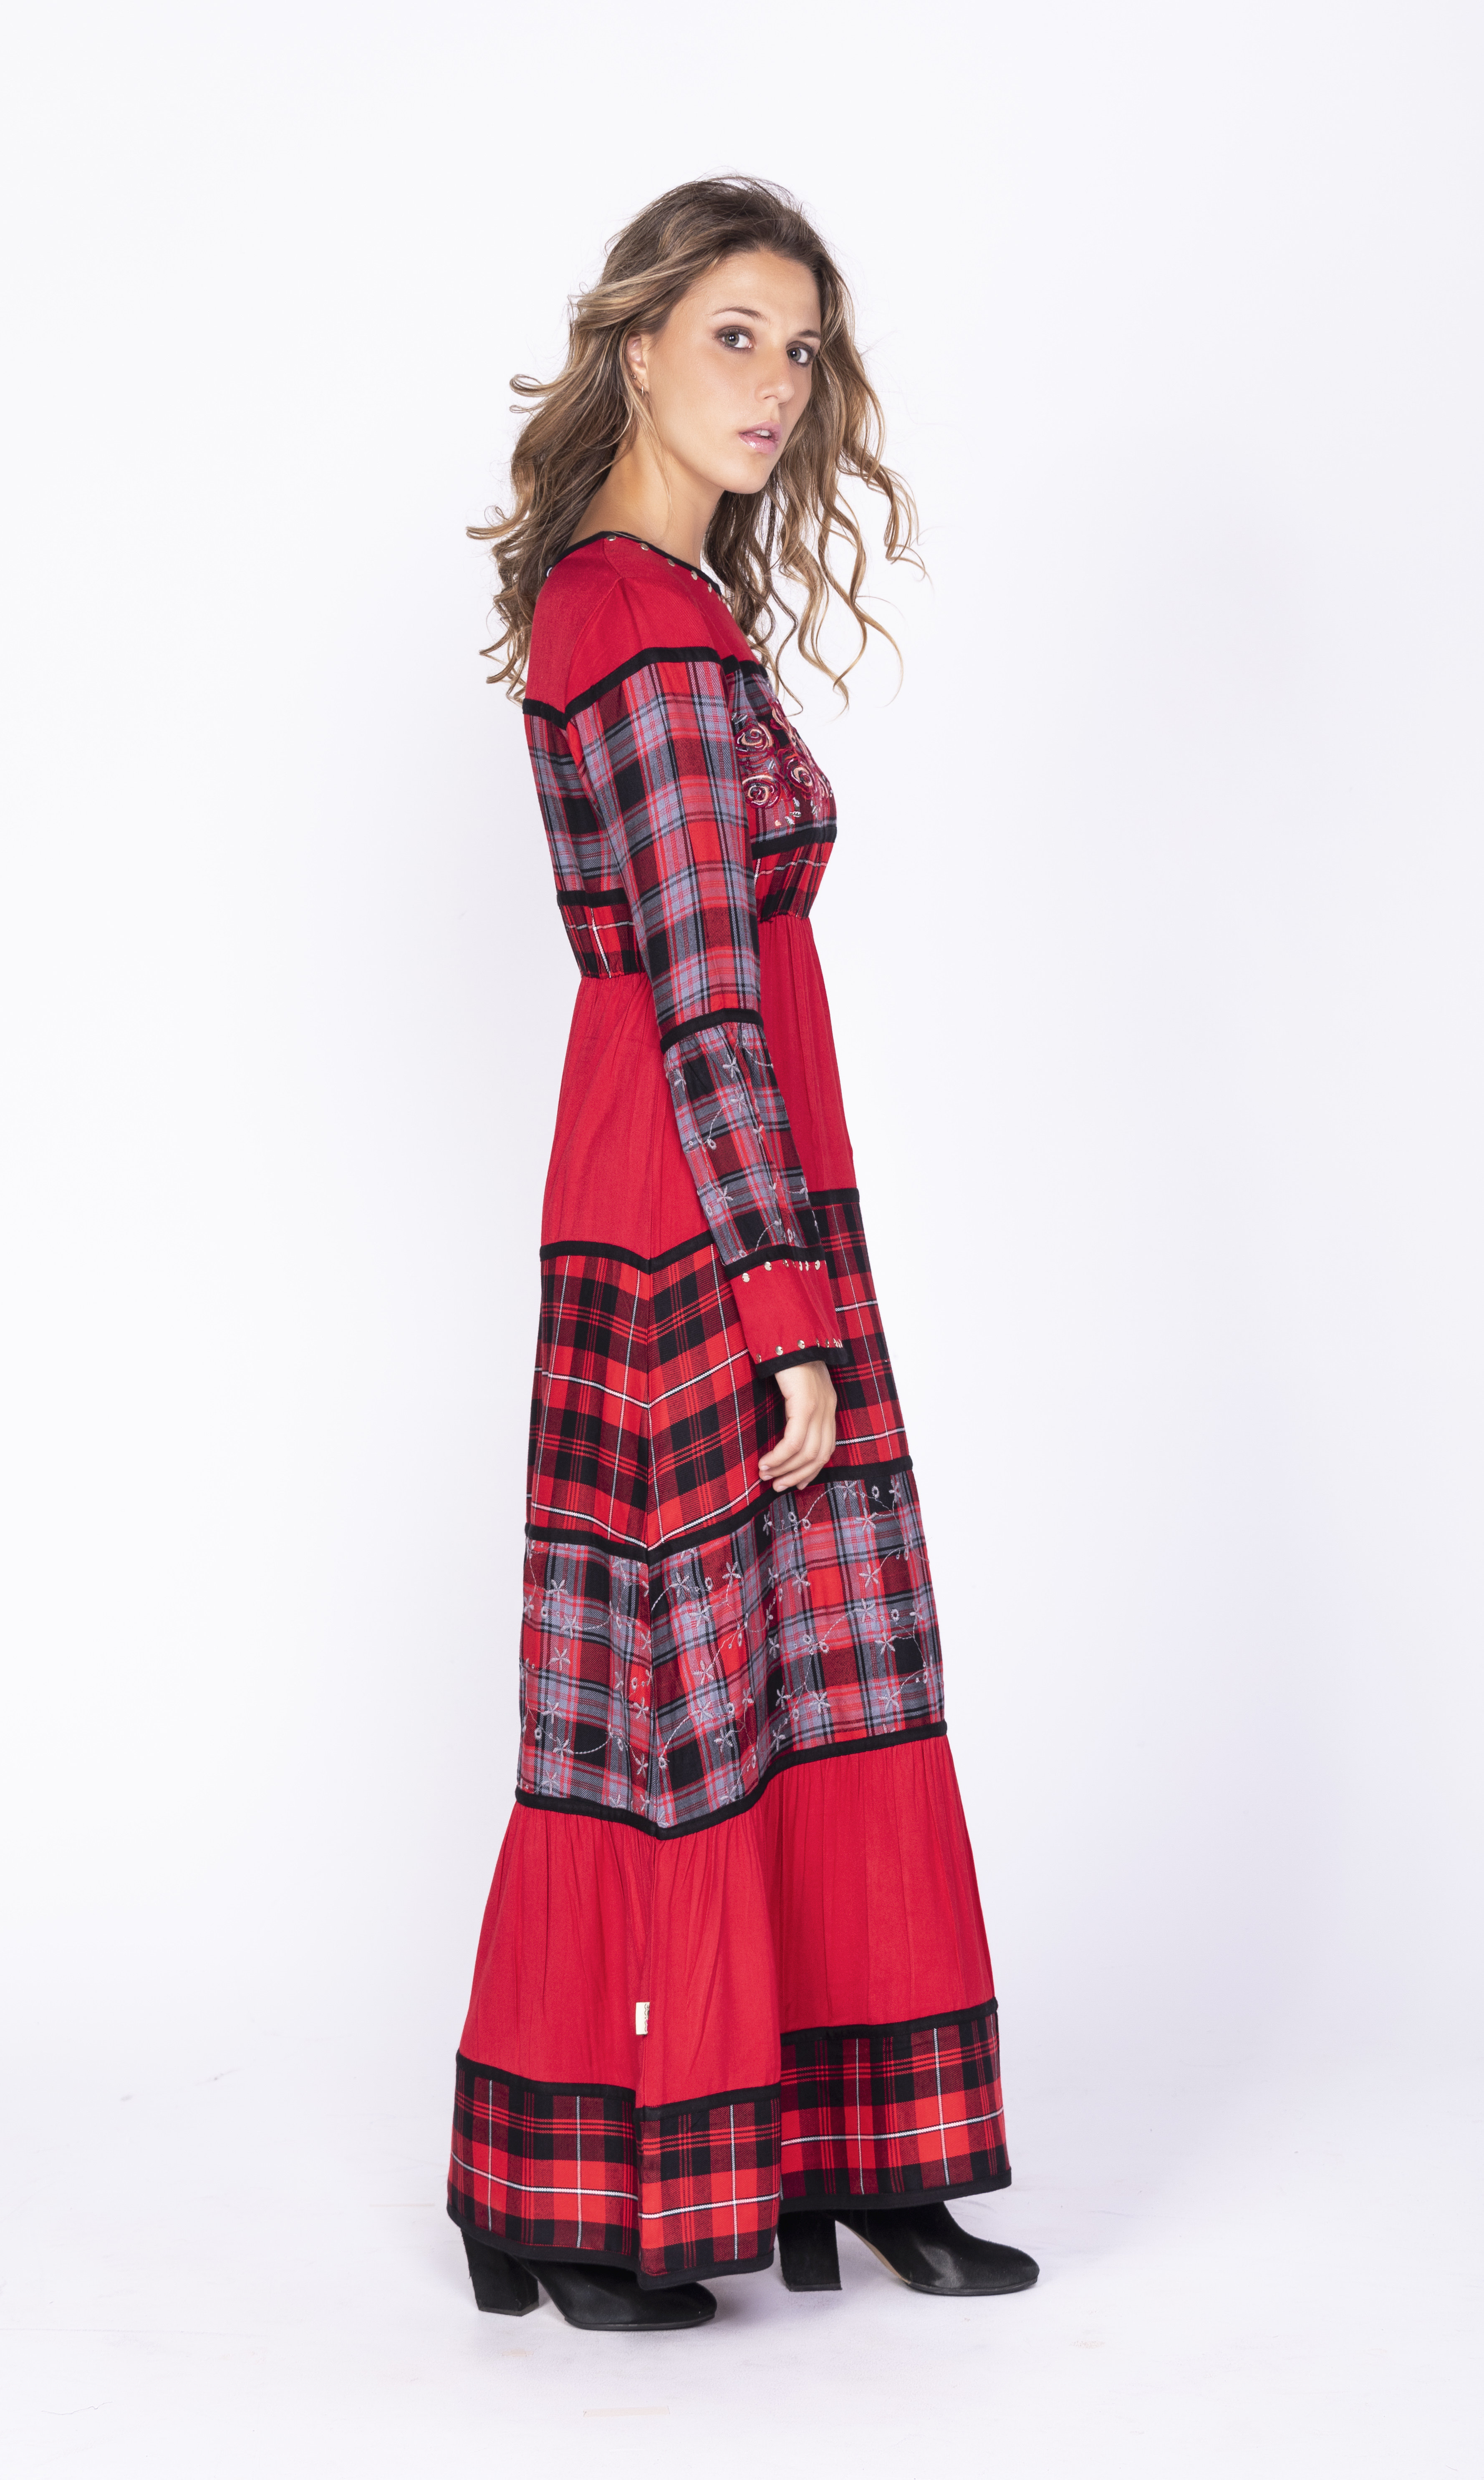 Savage Culture: Rose Red Plaid High Waist Dress